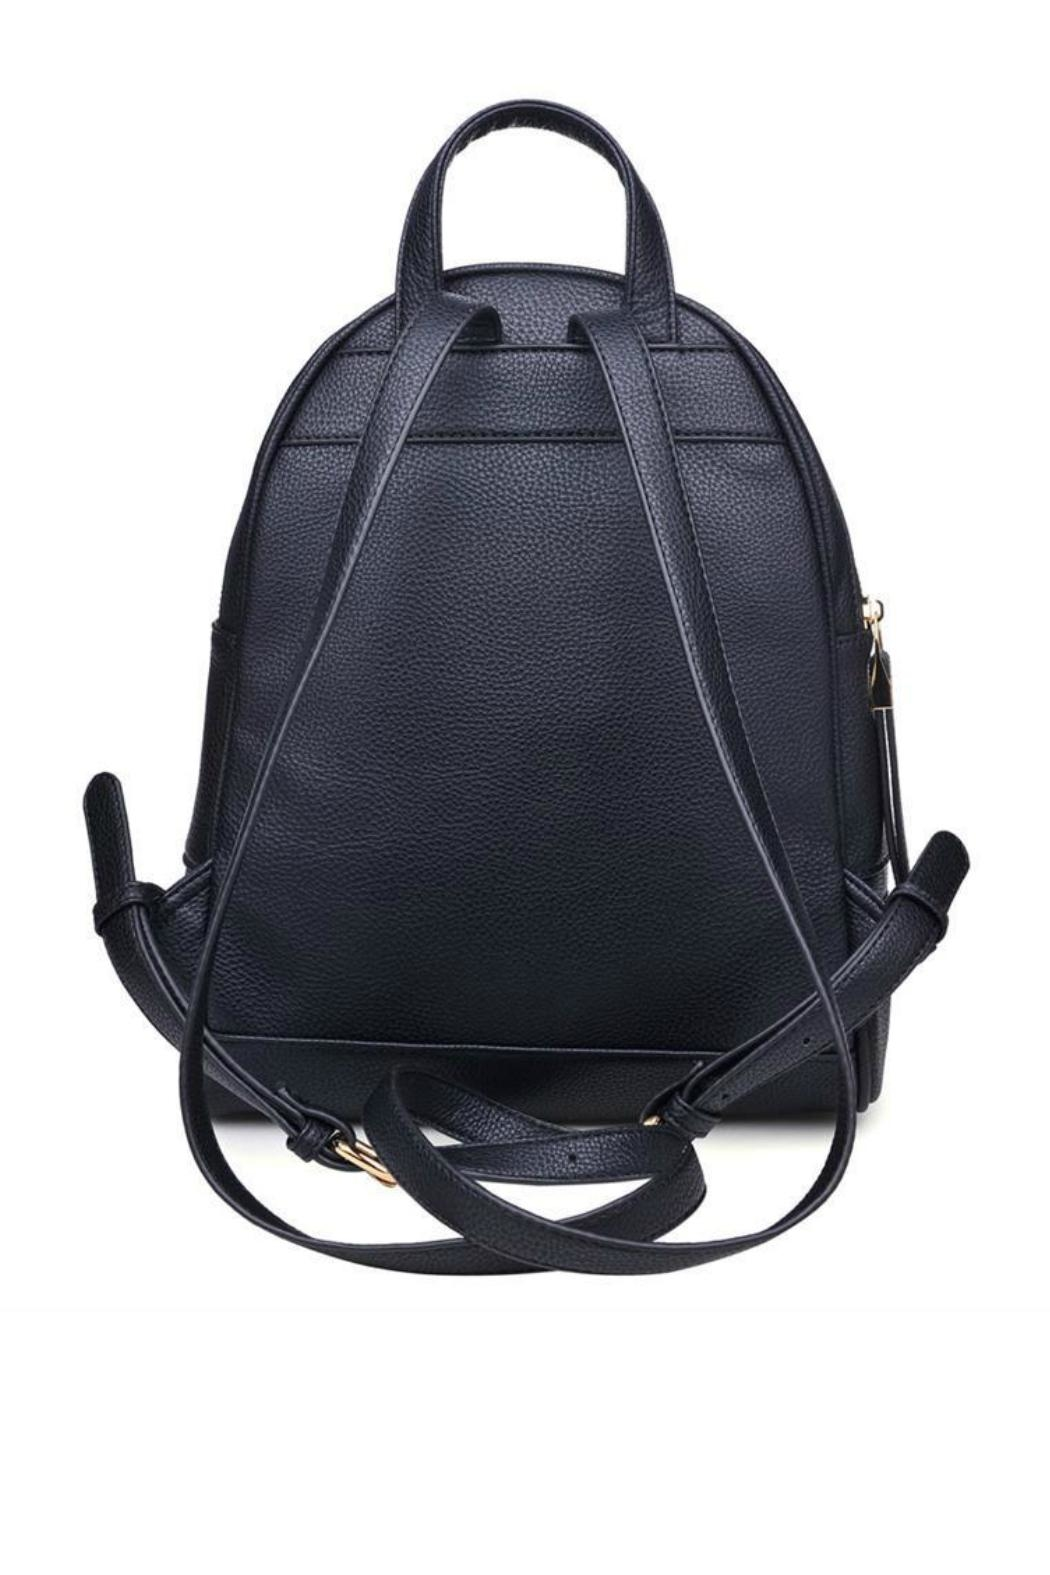 Urban Expressions Black Rose Backpack - Front Full Image